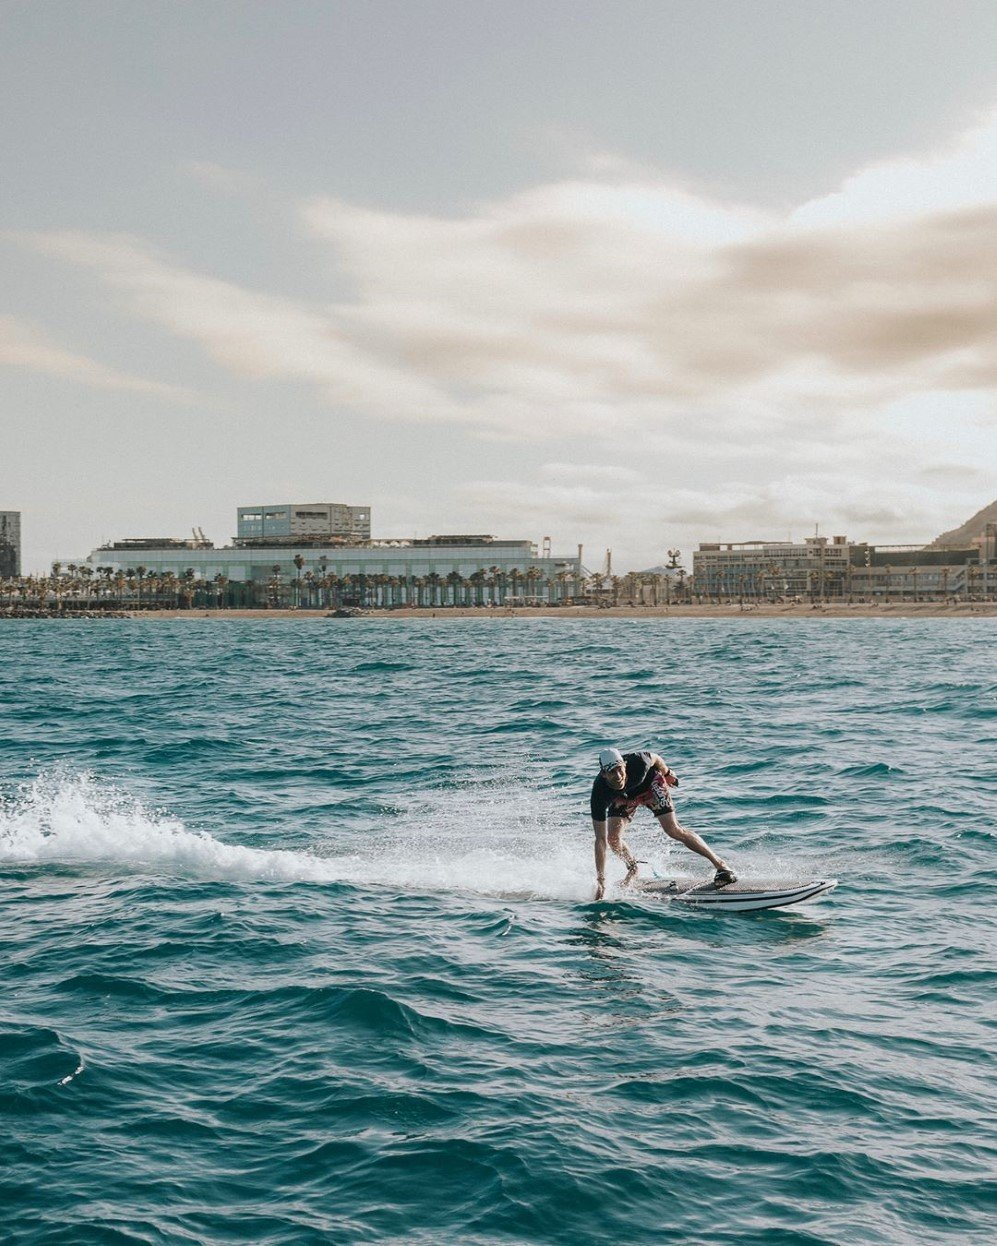 Electric Jetboard G2x Lets You Surf Even Without Any Waves